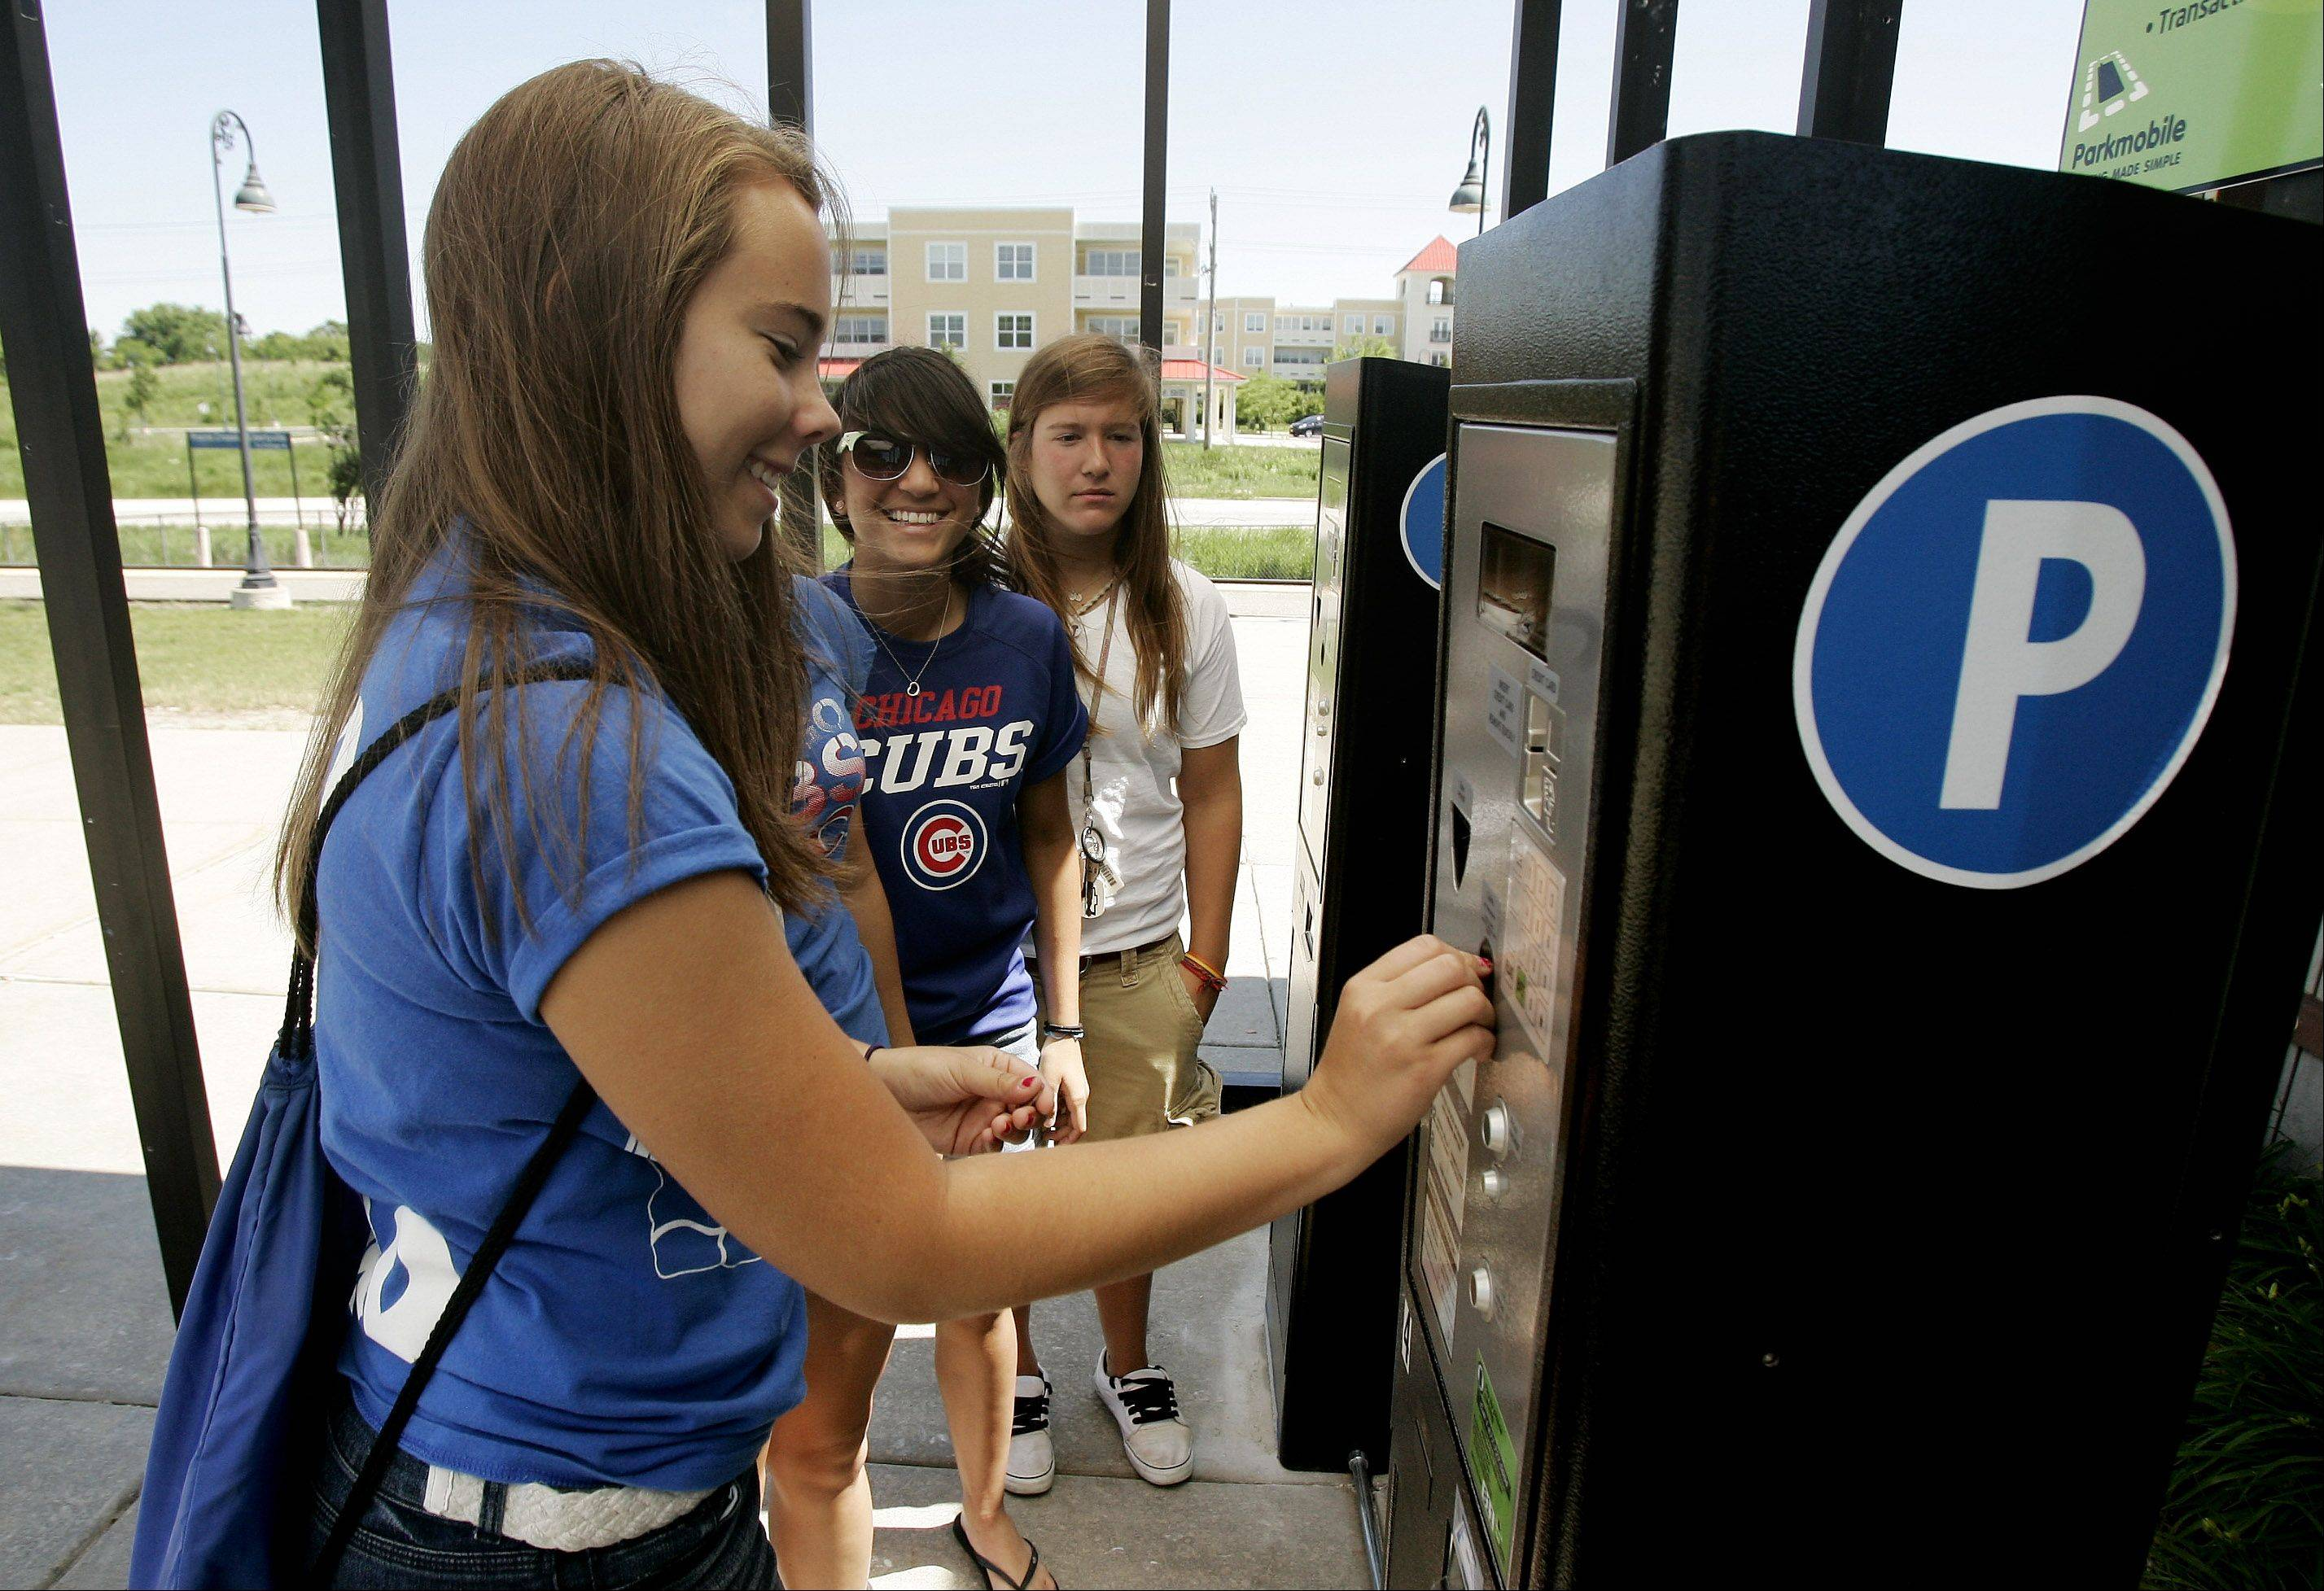 Megan Byrd, 18, of Gurnee, was among the commuters Tuesday to use the newly installed pay stations at the Prairie Crossing commuter station in Libertyville.